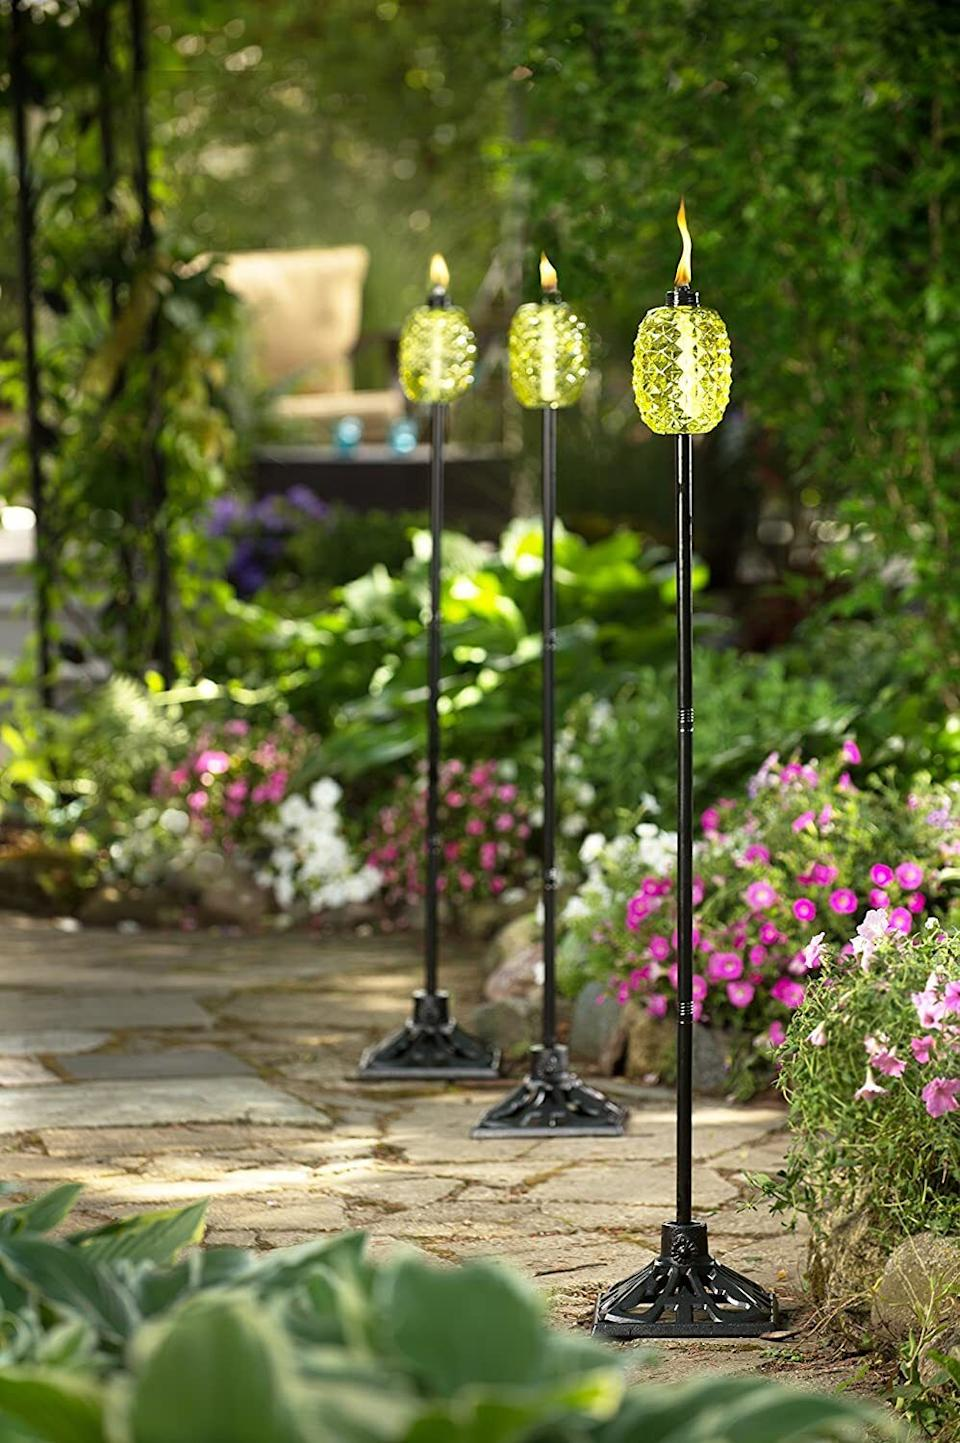 """This torch will add a little SpongeBob flair to yourgarden and provide just the right amount of light for nighttime activities. Plus, you can take off the metal pole part and use it as a table centerpiece!<br /><br /><strong>Promising review:</strong>""""This pineapple torch couldn't be cuter. I bought a few for my home in Florida and the decor is just perfect.<strong>I love how cute they look in my yard even when I am not using them.</strong>The tiki fuel that goes with the torches is also great for keeping bugs away."""" —<a href=""""https://amzn.to/3azIgXn"""" target=""""_blank"""" rel=""""nofollow noopener noreferrer"""" data-skimlinks-tracking=""""5580838"""" data-vars-affiliate=""""Amazon"""" data-vars-href=""""https://www.amazon.com/gp/customer-reviews/R2MQ6PJJCQ1CPX?tag=bfgenevieve-20&ascsubtag=5580838%2C7%2C33%2Cmobile_web%2C0%2C0%2C1159931"""" data-vars-keywords=""""cleaning,fast fashion"""" data-vars-link-id=""""1159931"""" data-vars-price="""""""" data-vars-product-id=""""16176775"""" data-vars-retailers=""""Amazon"""">Amazon Customer</a><br /><br /><strong>Get it from Amazon for<a href=""""https://amzn.to/2Qhfh3R"""" target=""""_blank"""" rel=""""nofollow noopener noreferrer"""" data-skimlinks-tracking=""""5580838"""" data-vars-affiliate=""""Amazon"""" data-vars-asin=""""B078PVLC59"""" data-vars-href=""""https://www.amazon.com/dp/B078PVLC59?tag=bfgenevieve-20&ascsubtag=5580838%2C7%2C33%2Cmobile_web%2C0%2C0%2C1159987"""" data-vars-keywords=""""cleaning,fast fashion"""" data-vars-link-id=""""1159987"""" data-vars-price="""""""" data-vars-product-id=""""16176774"""" data-vars-product-img=""""https://m.media-amazon.com/images/I/41JNwKtplkL.jpg"""" data-vars-product-title=""""TIKI 1117095 Outdoor Torch, 65"""", Green"""" data-vars-retailers=""""Amazon"""">$32.92</a>.</strong>"""